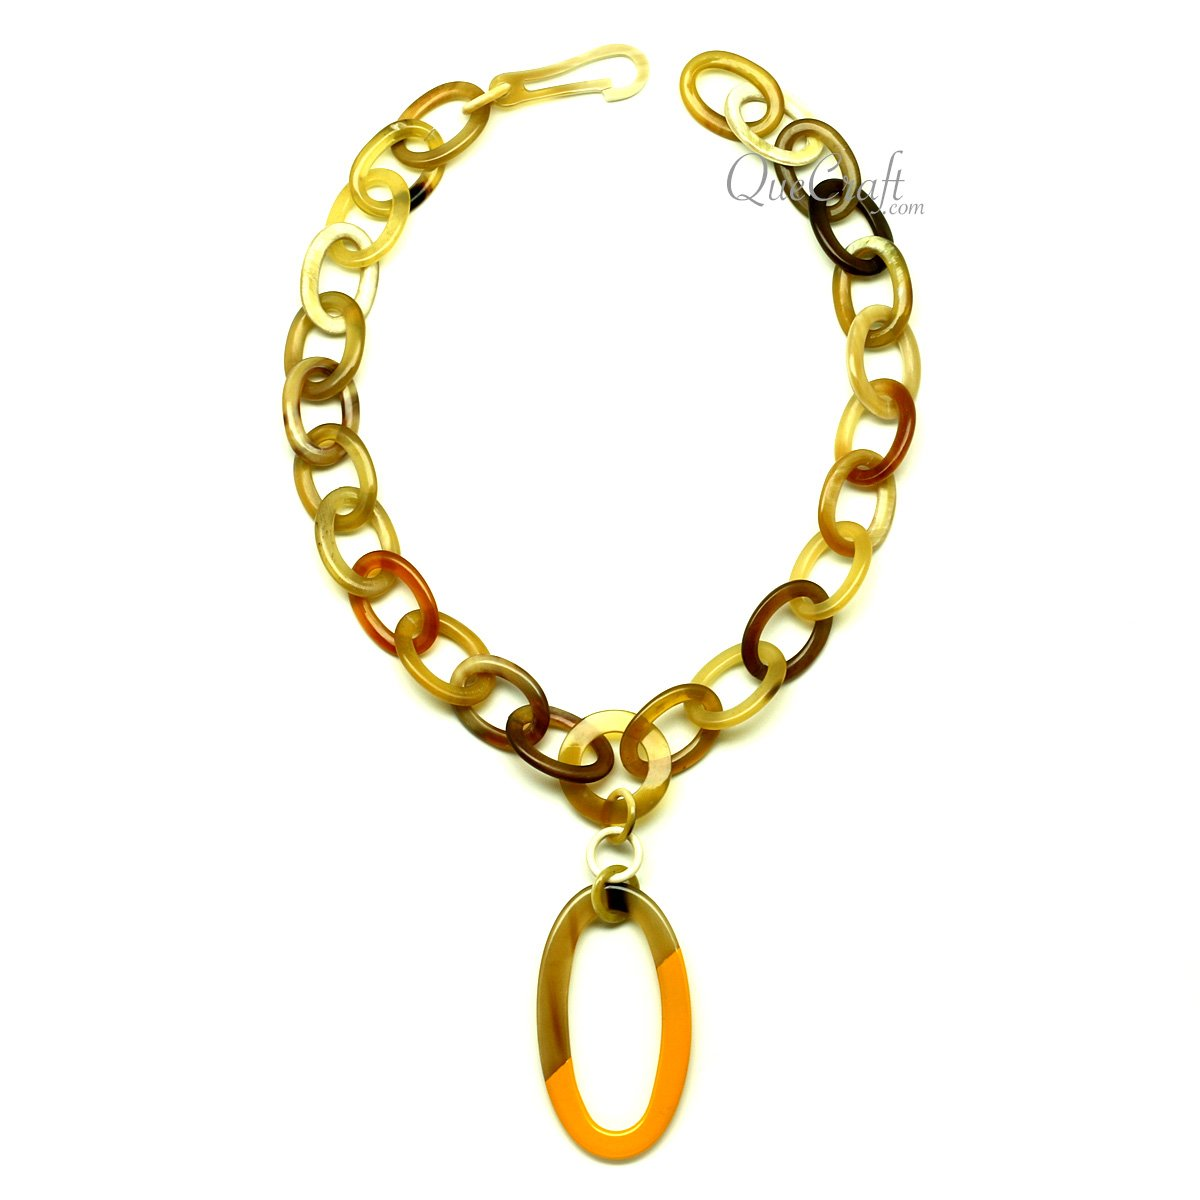 Horn & Lacquer Chain Necklace #13059 - HORN.JEWELRY